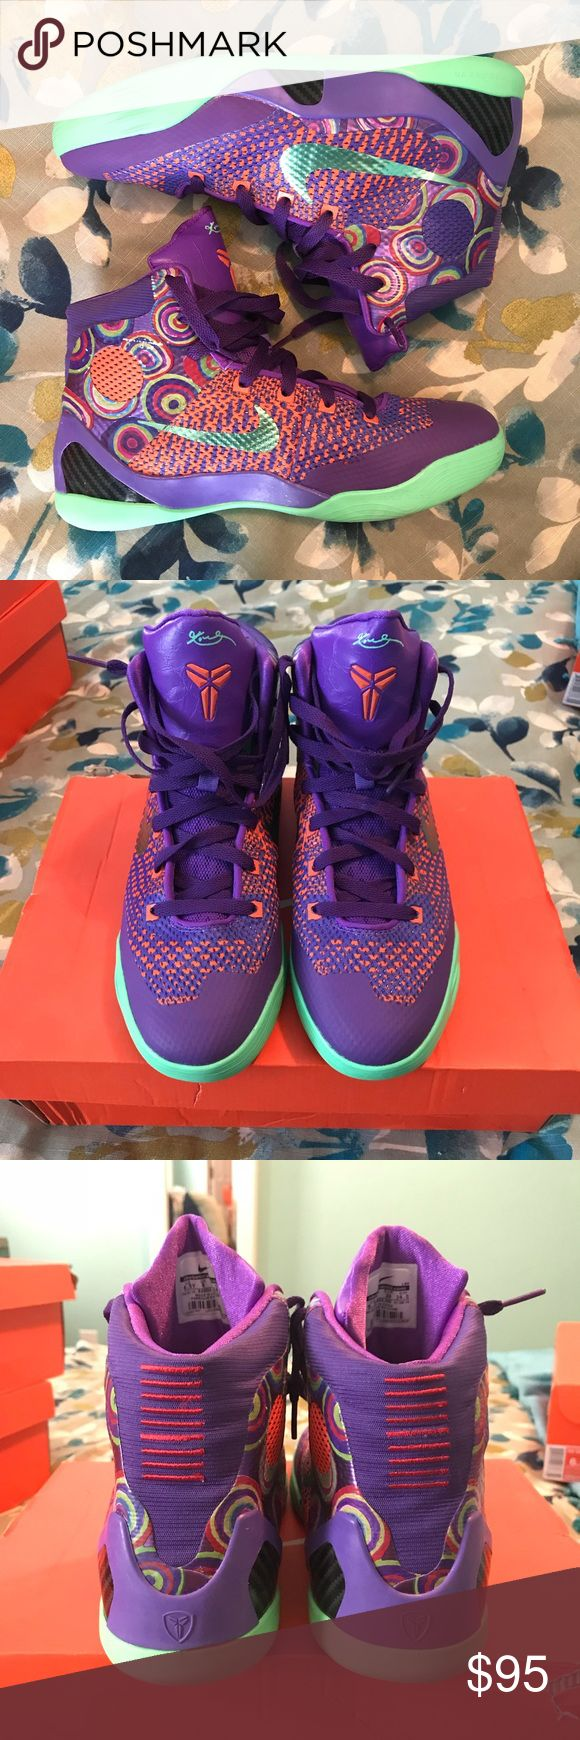 Kobe IX Elite (GS) High top basketball shoes. Colorful and fun! Super comfortable and offer solid ankle support. Worn only 3 times. Nike Shoes Sneakers